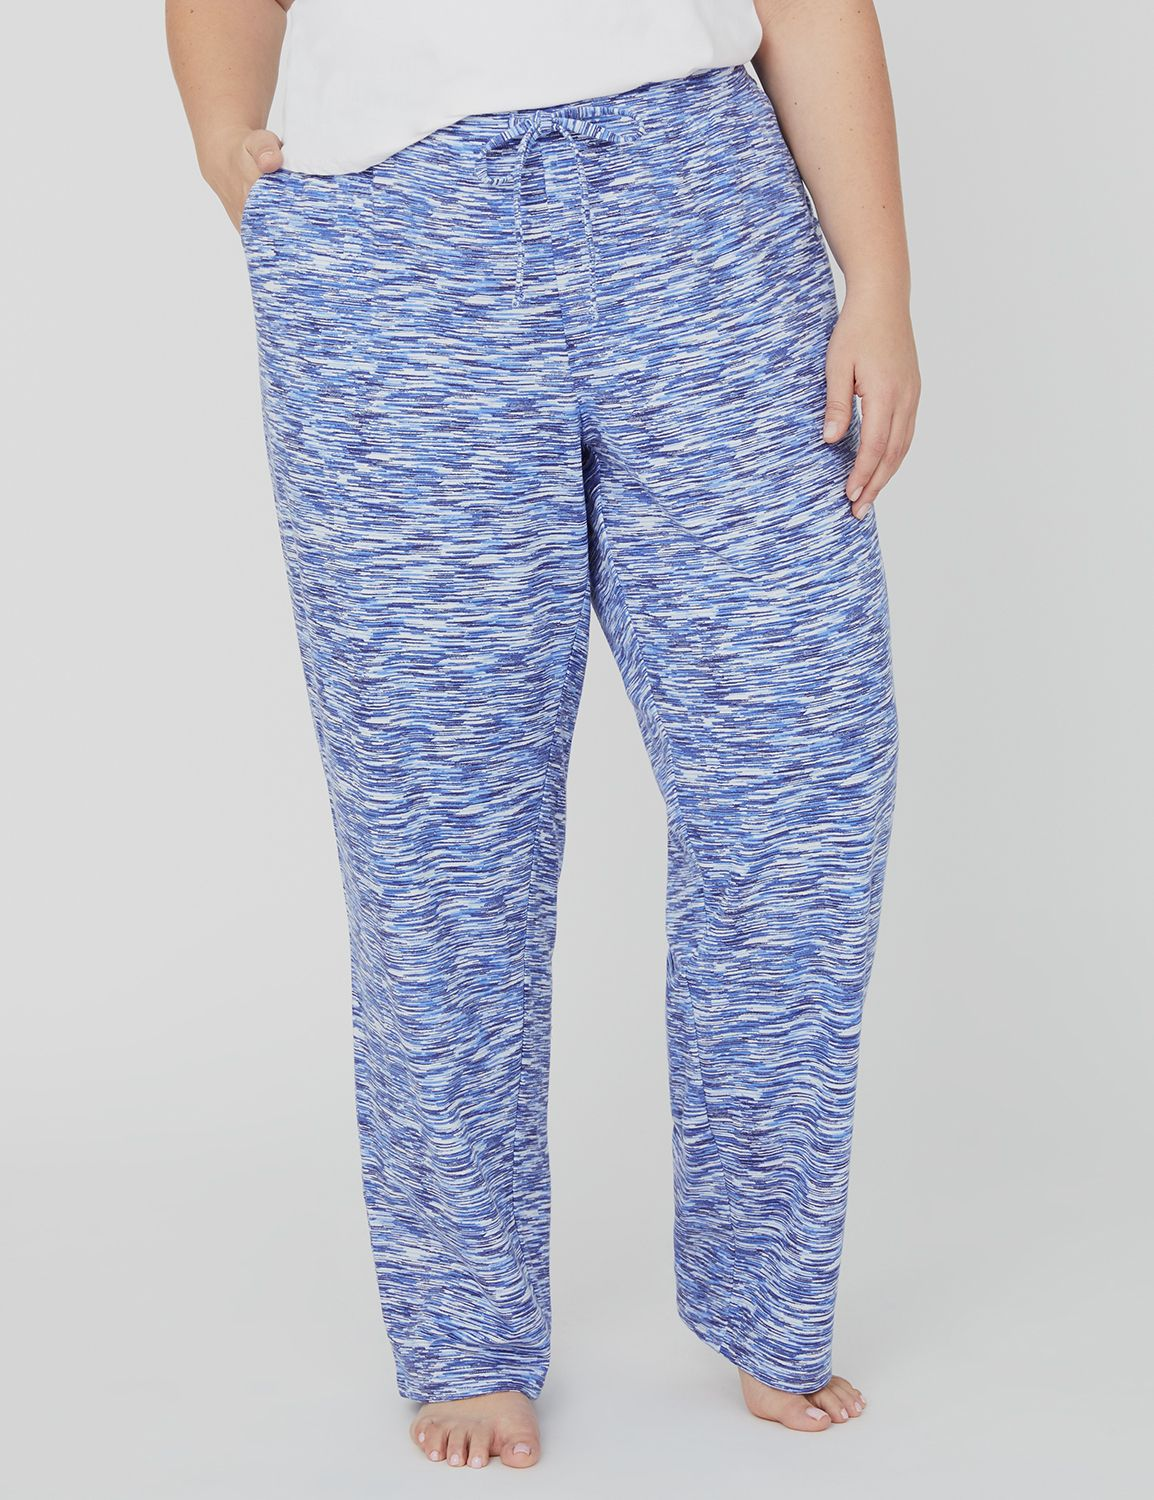 Spacedye Terry Sleep Pant 1088019 Cold/Temp A/O Printed Space MP-300096215